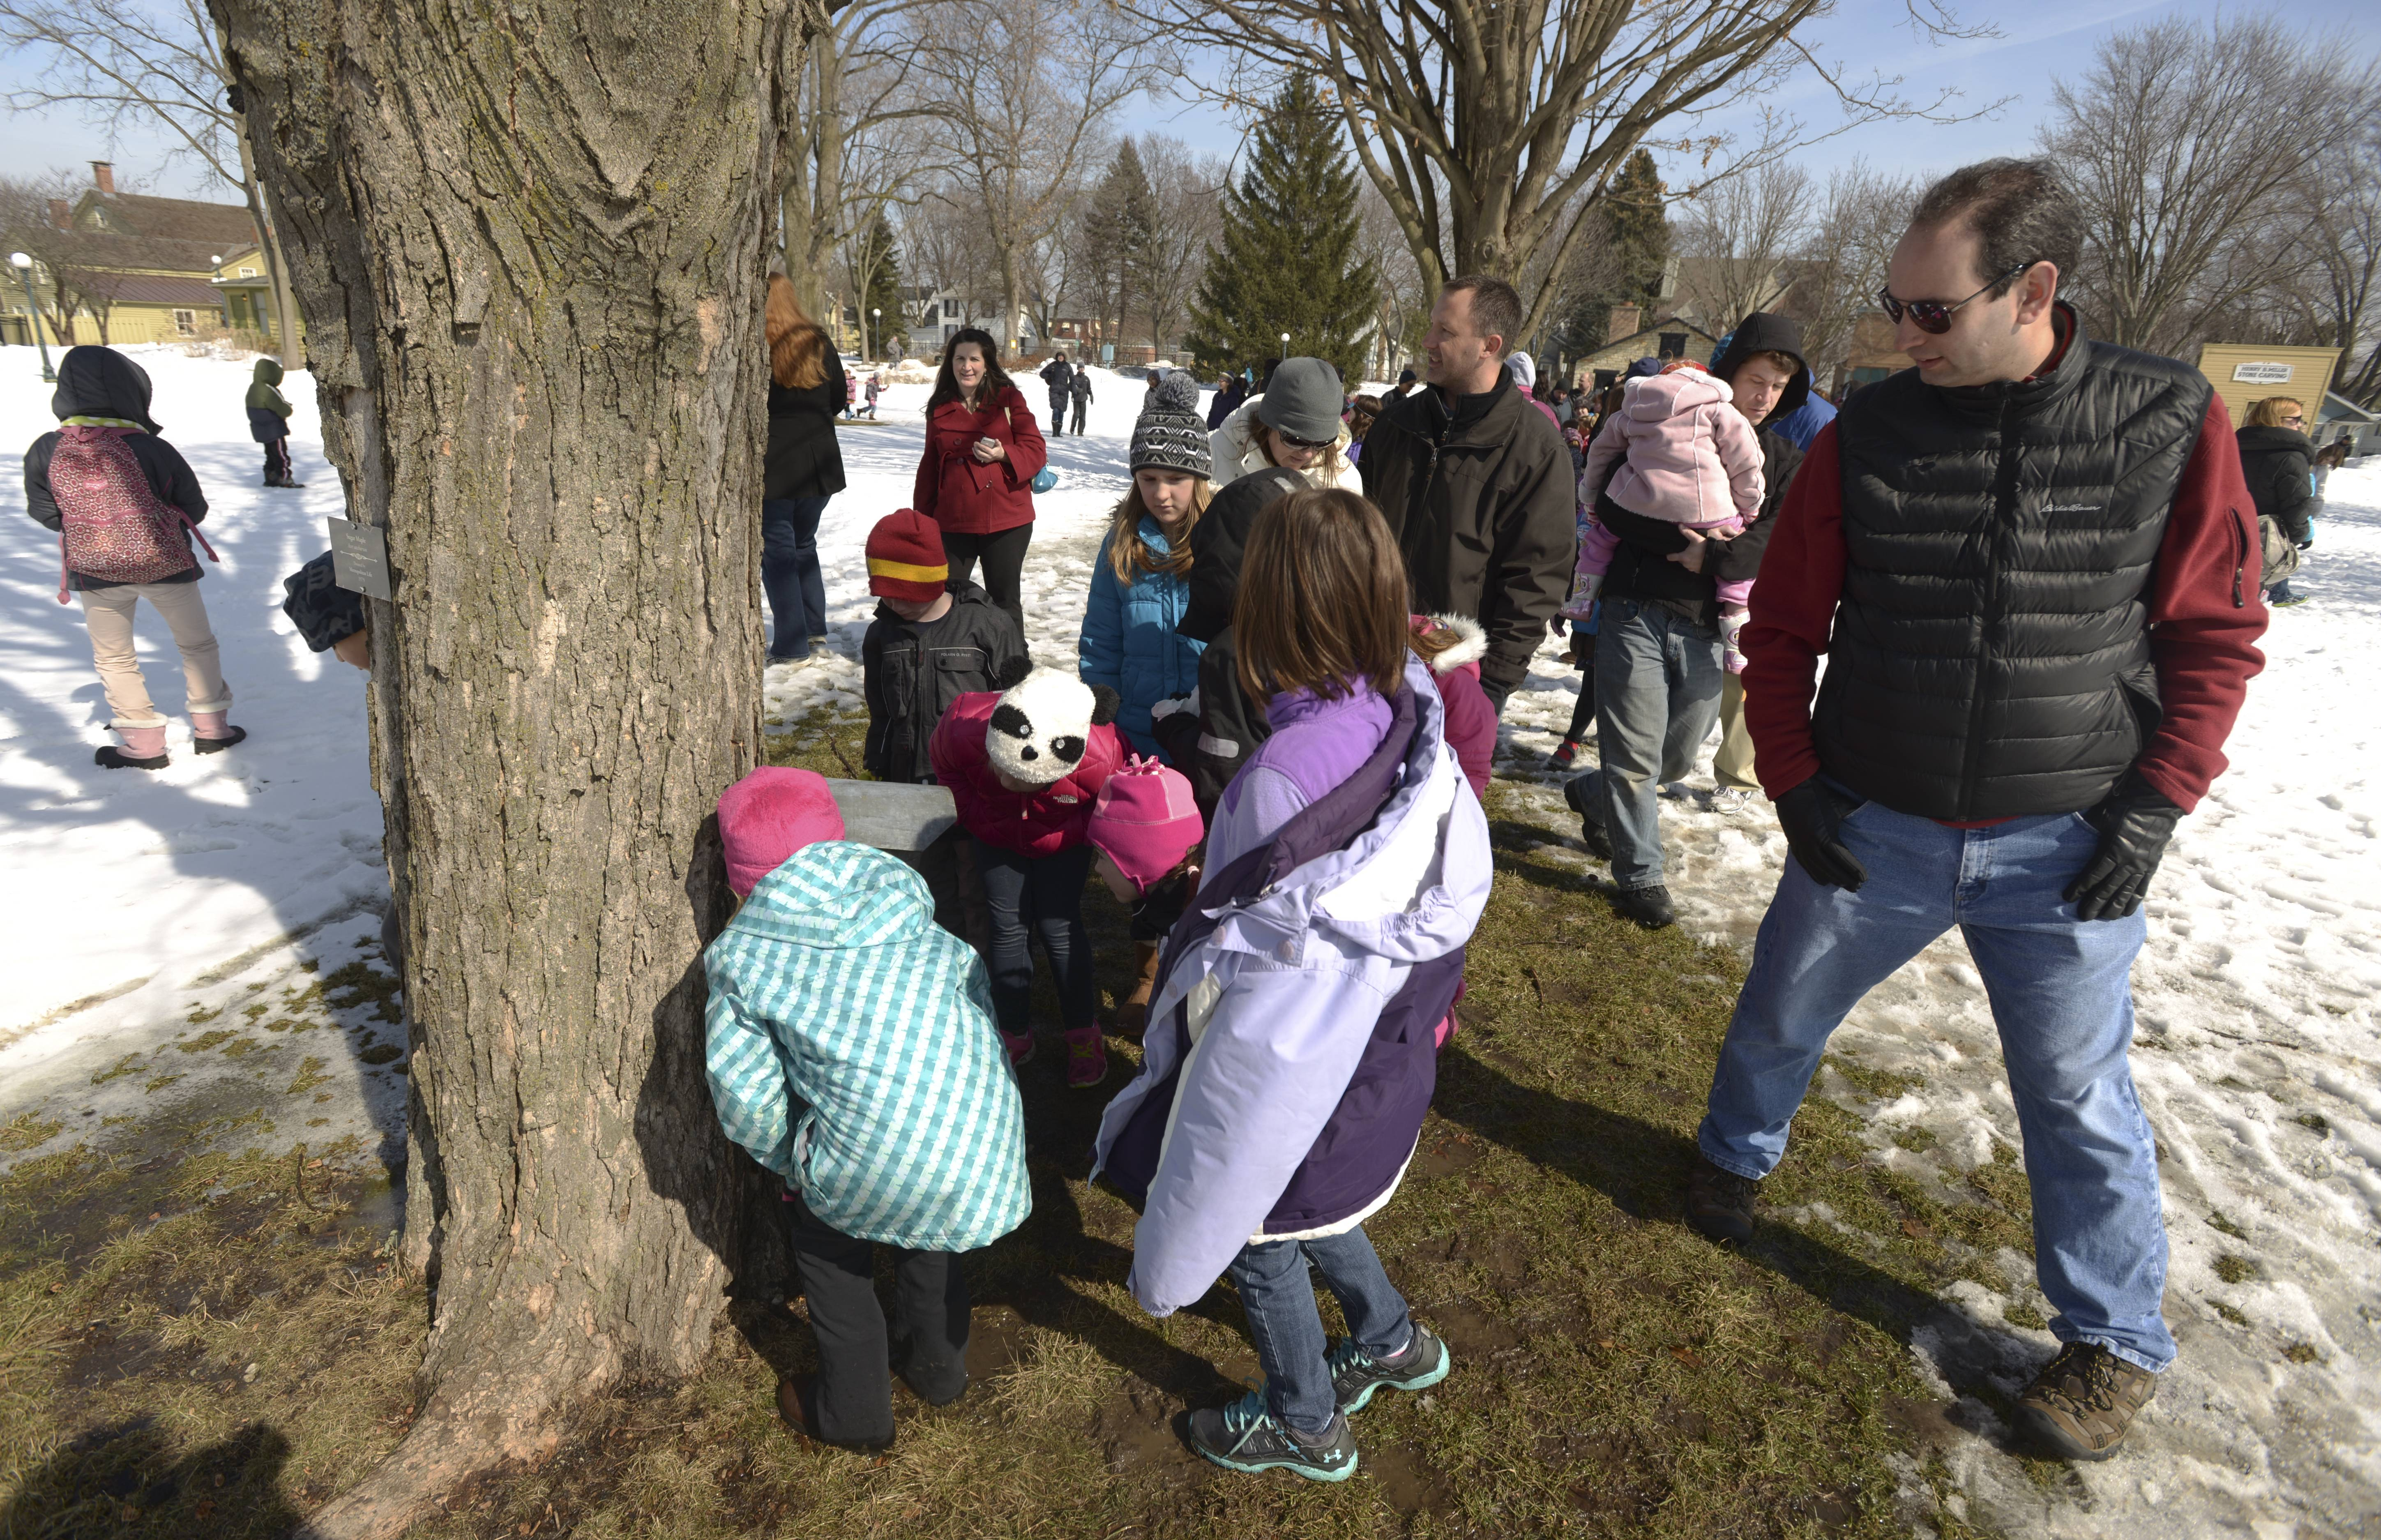 Visitors to the Naper Settlement check out a tapped maple tree Sunday that was part of a demonstration showing how maple syrup used to be made. the demonstration was part of the Naperville museum's annual Maple Sugaring Days.